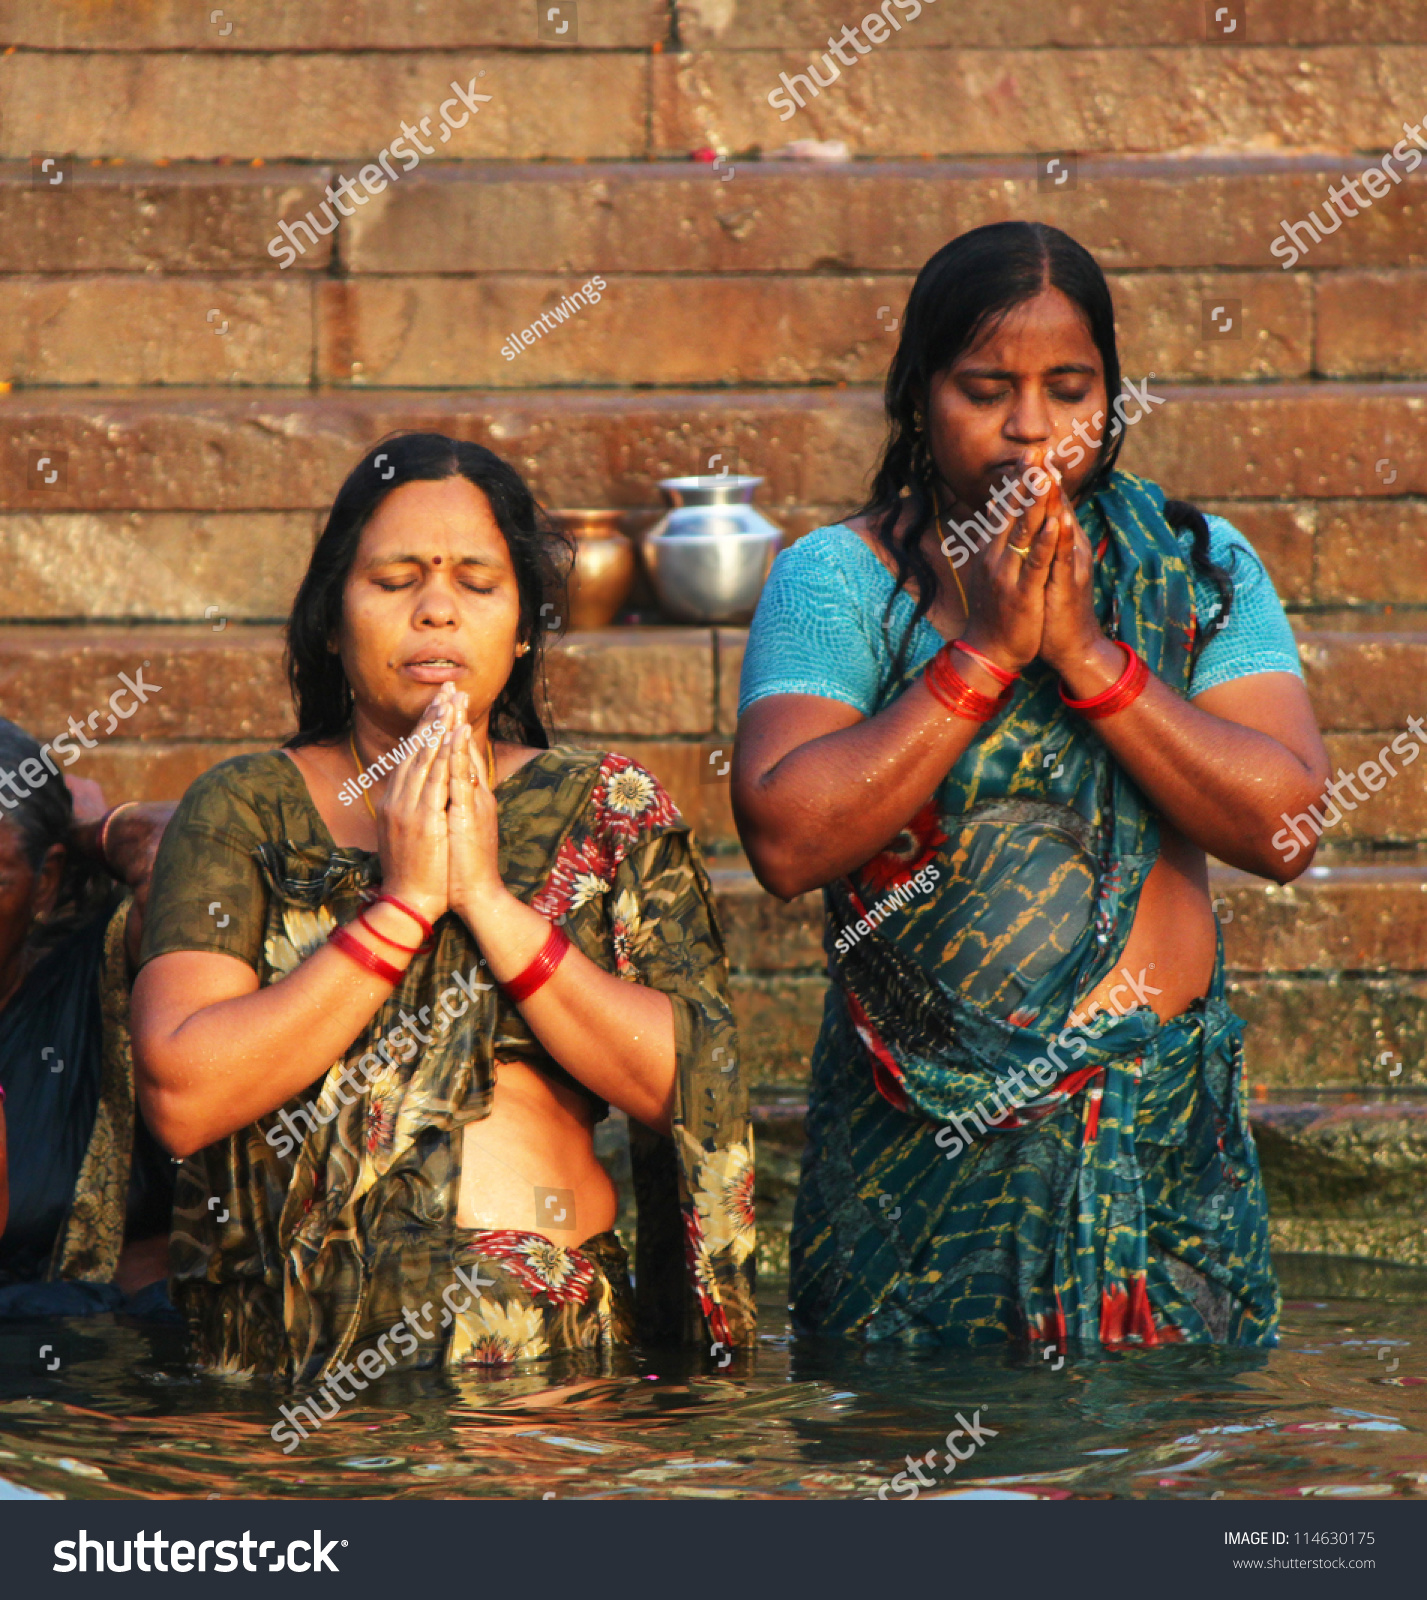 hindu single women in morning sun These are some of the common ways that women restrict their actions every single day  29 things women avoid doing  it's cooler after the sun goes down — the .